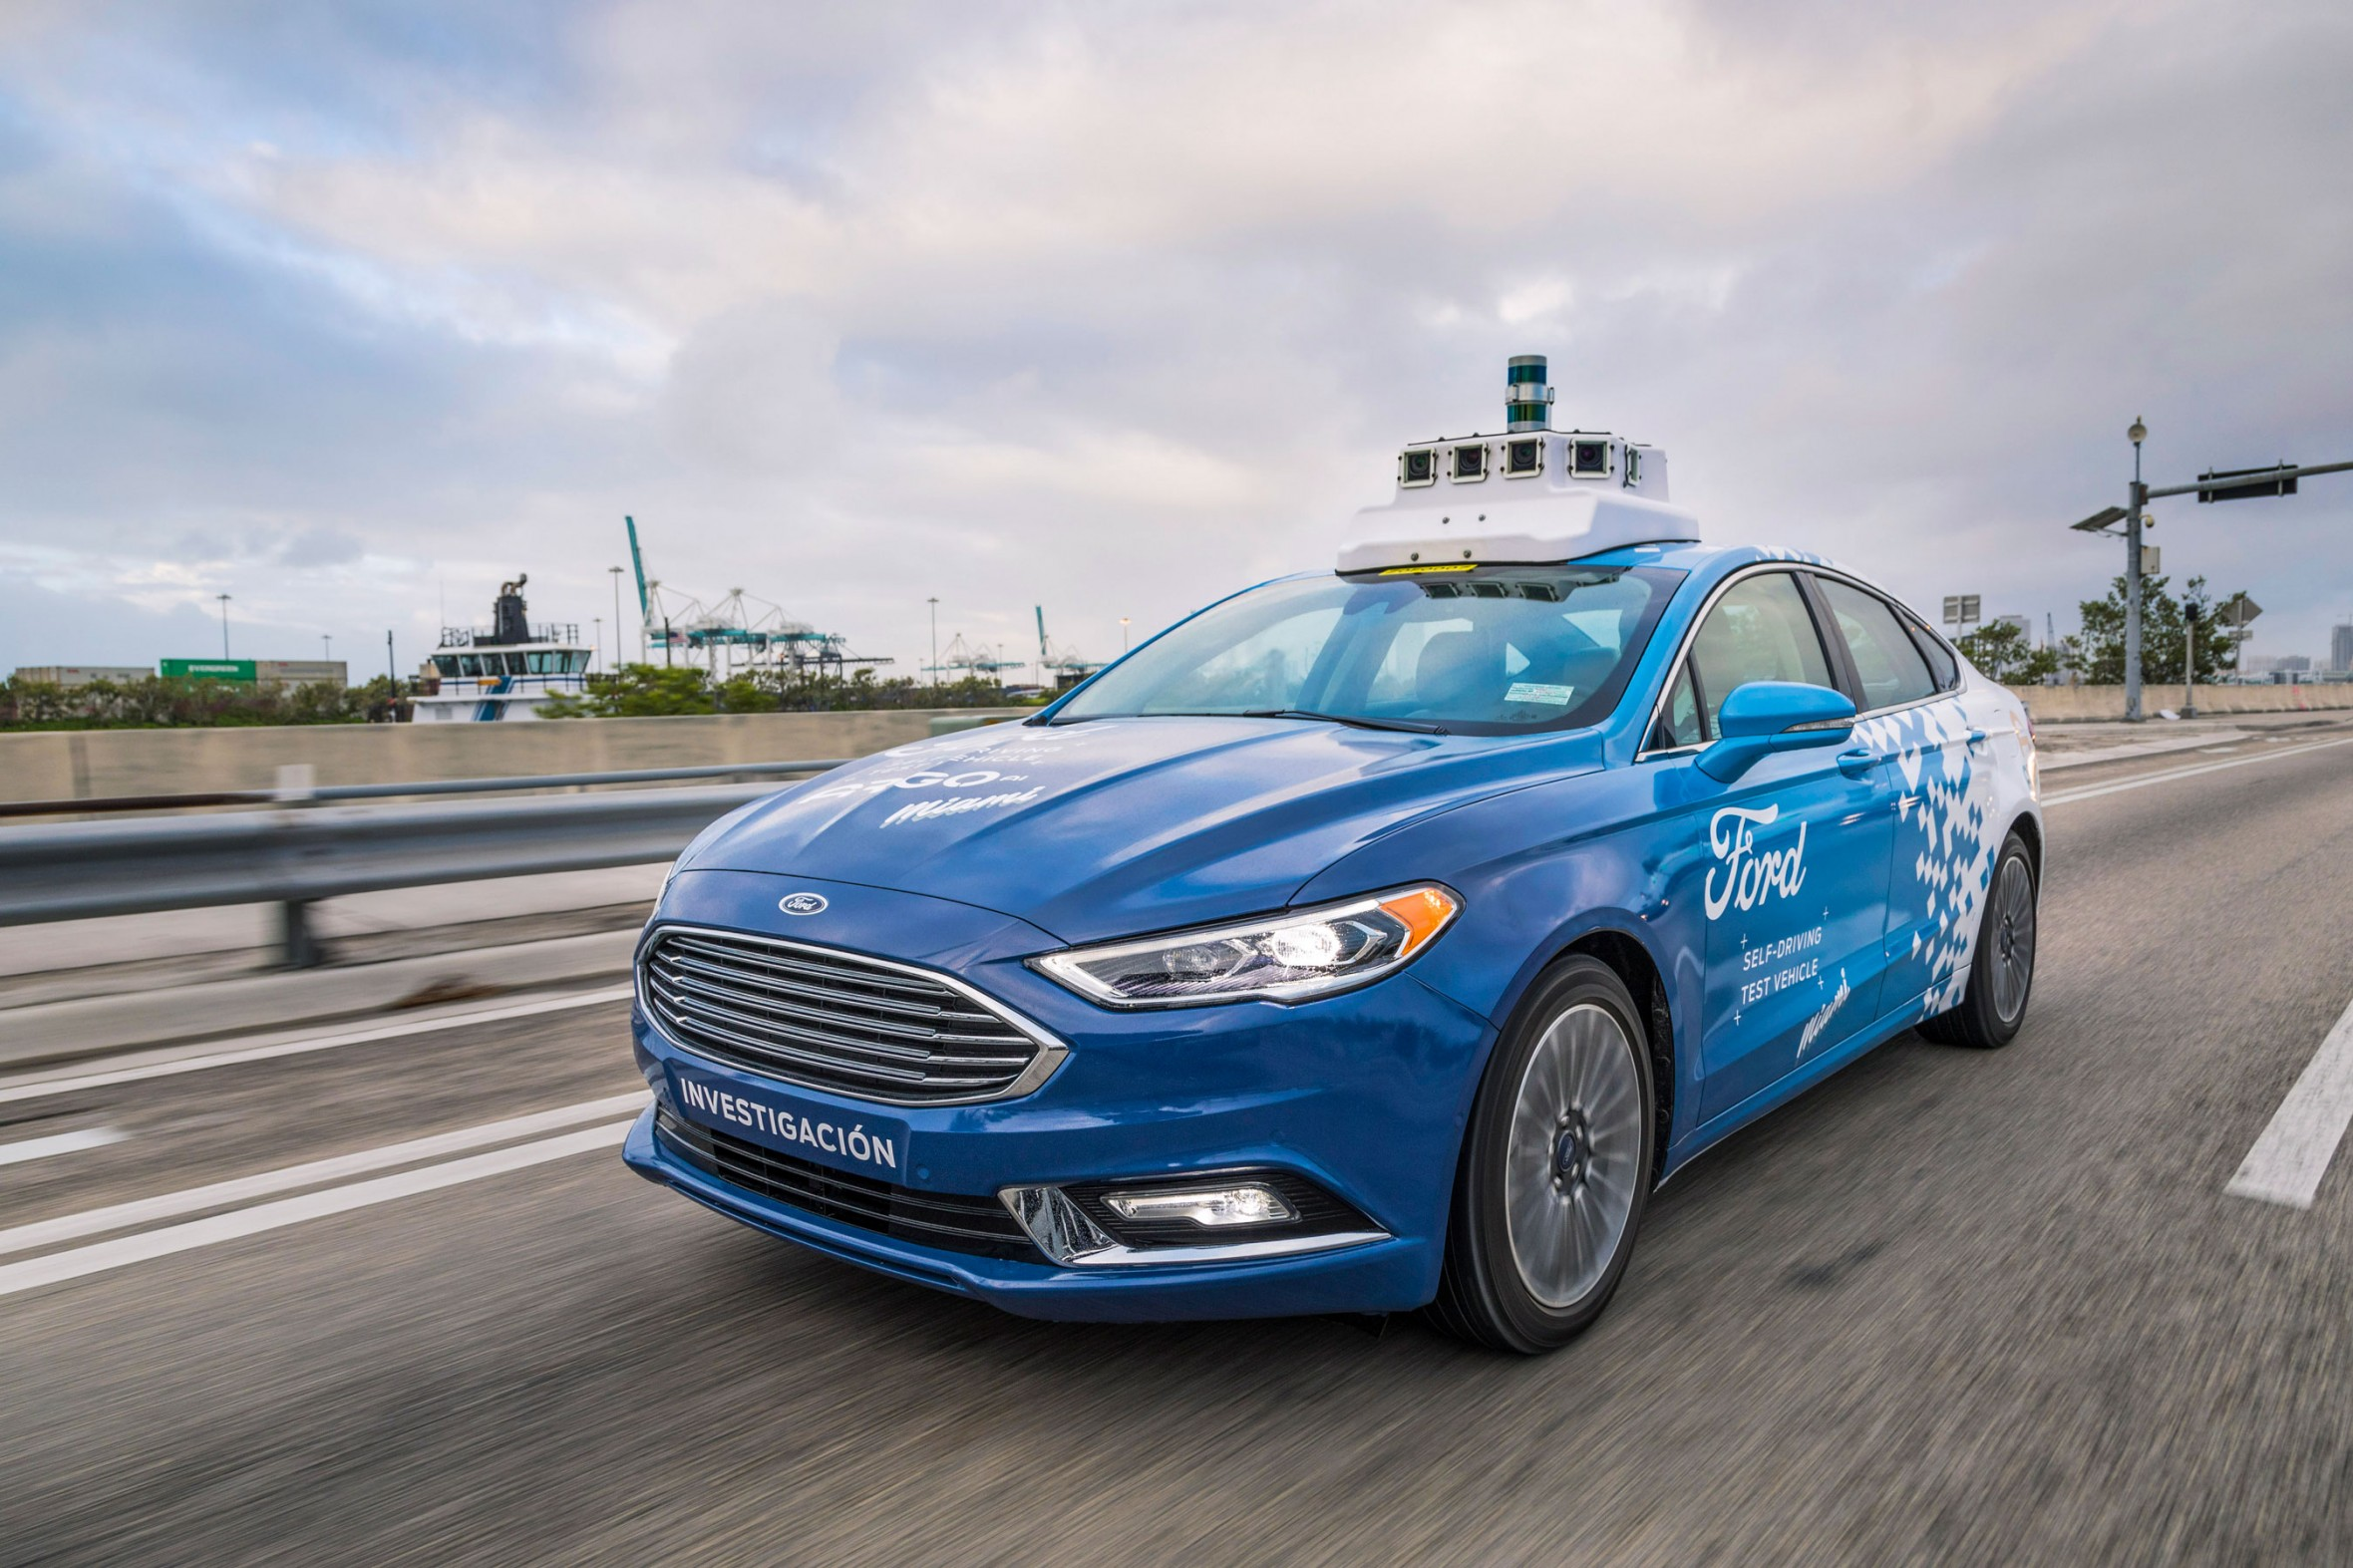 Ford's self-driving taxi passengers may share rides with packages and ads